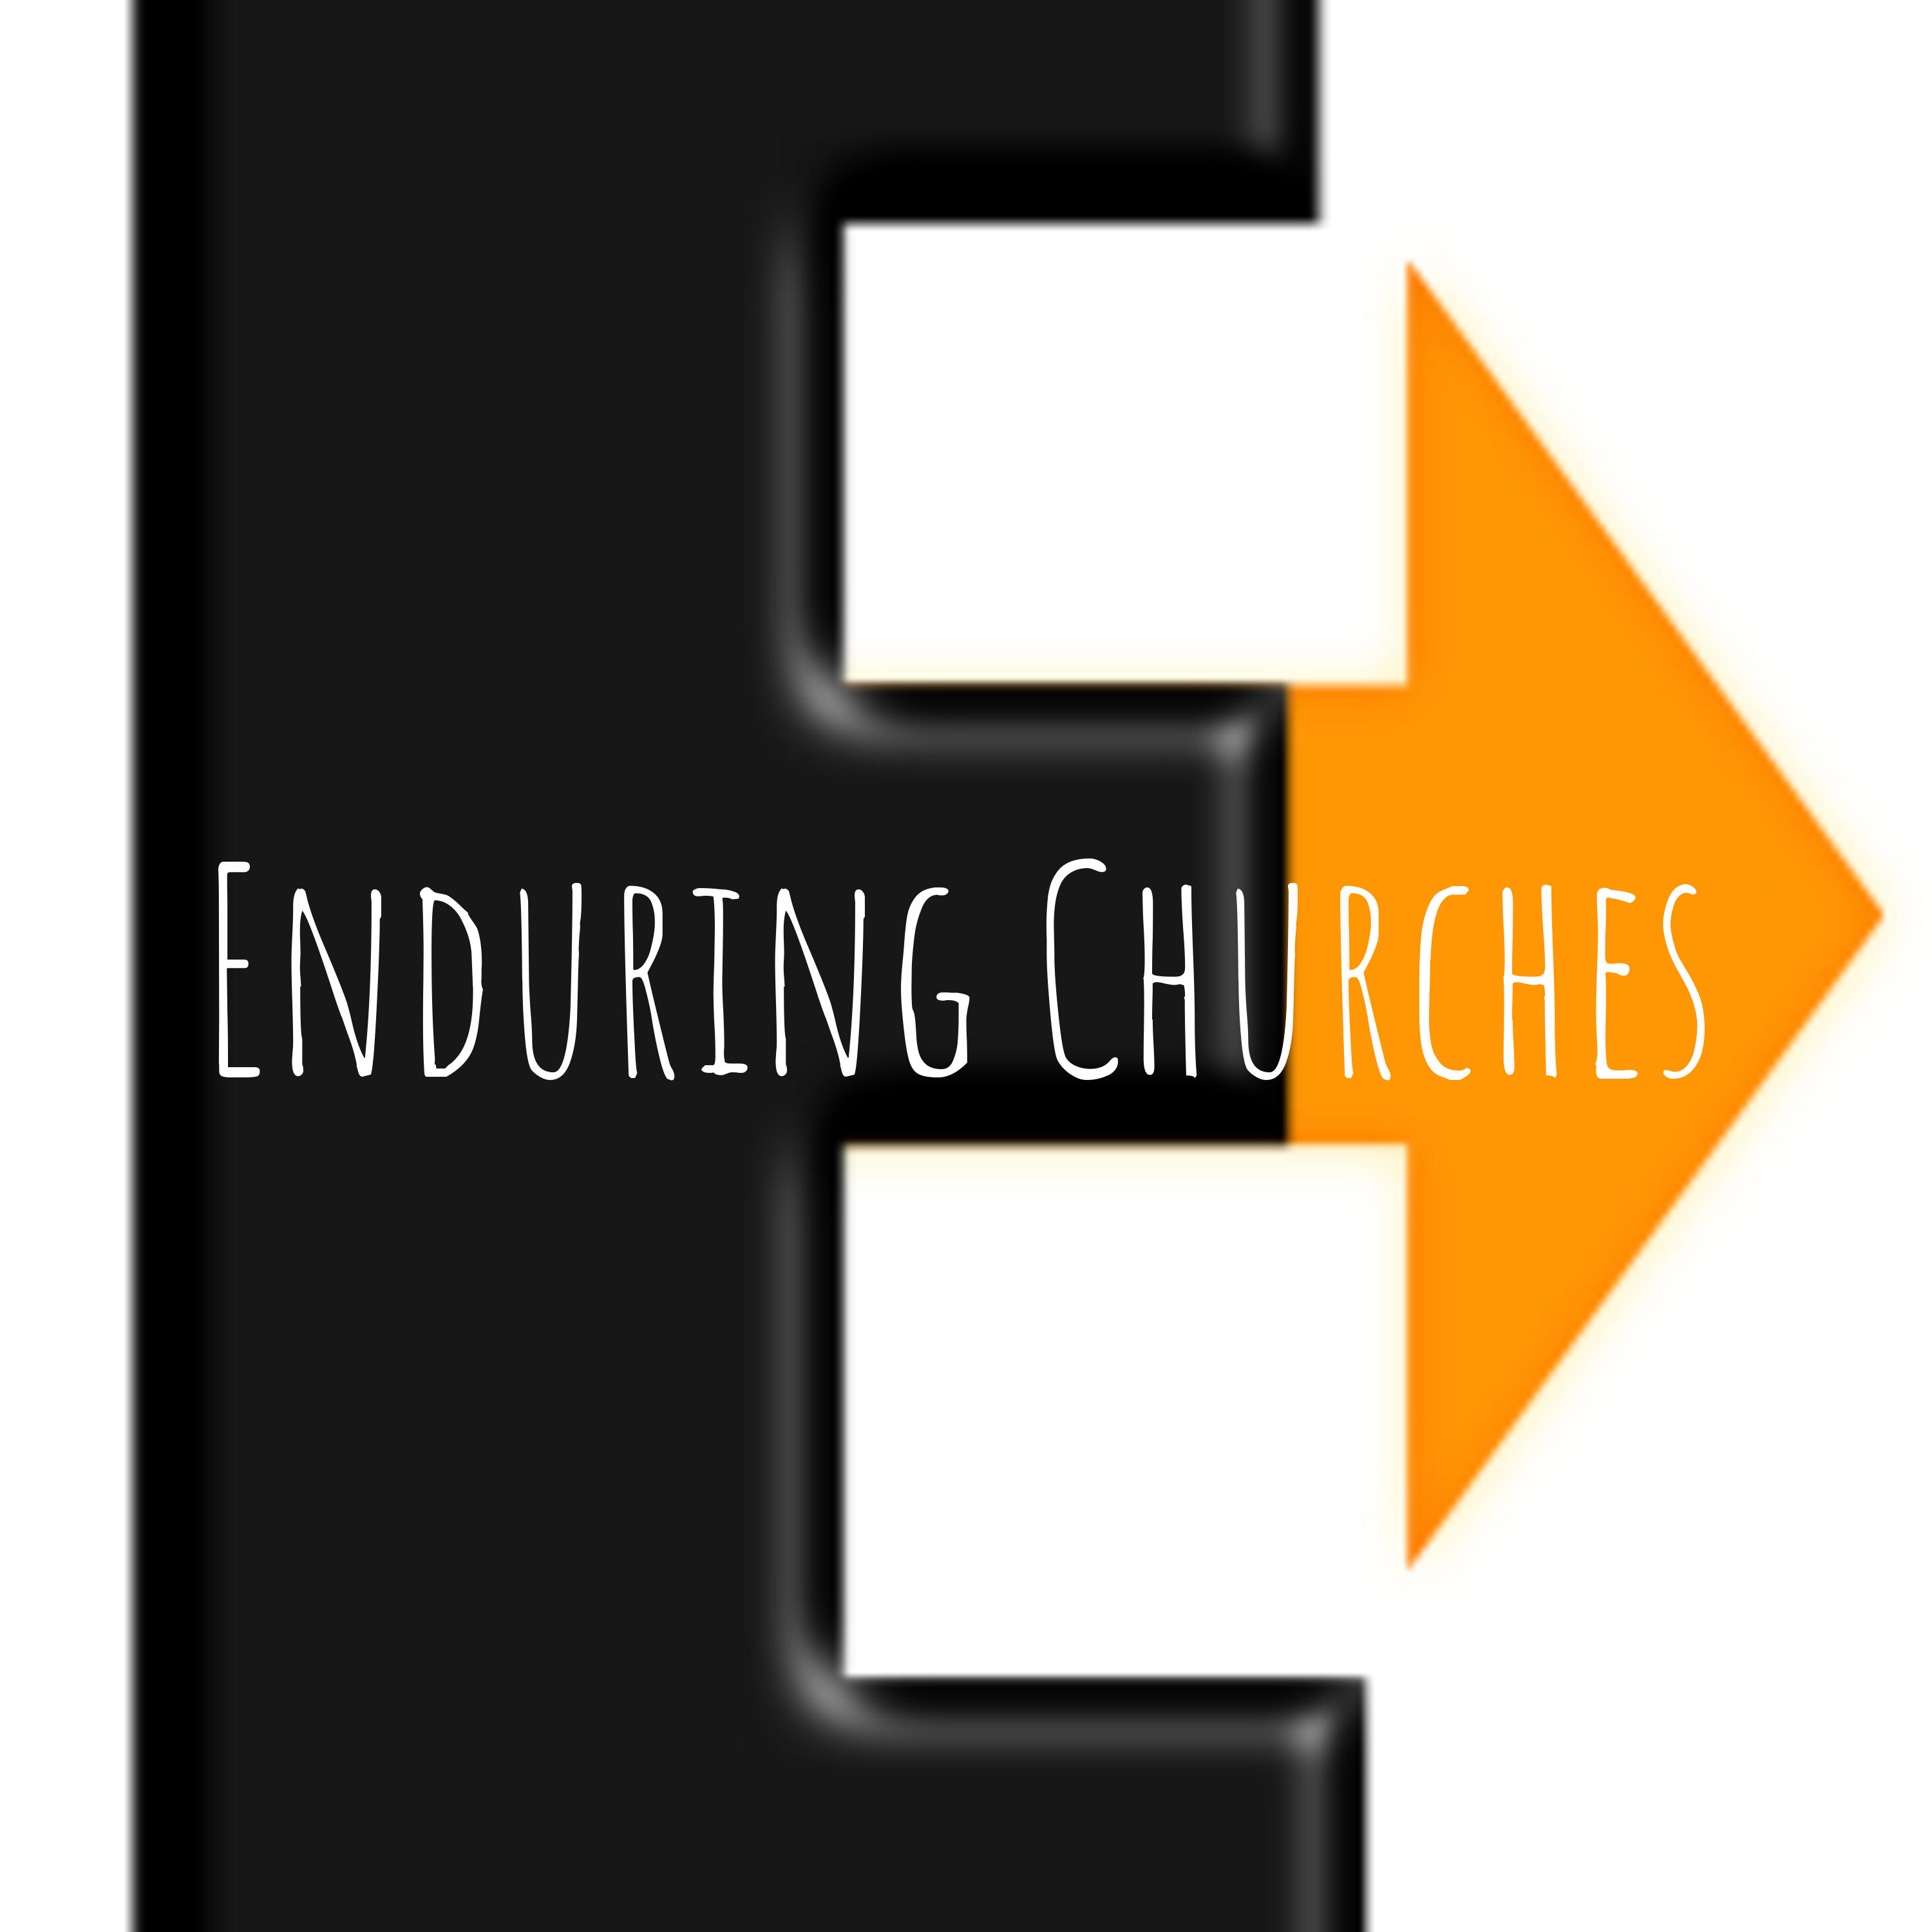 #1: Introduction to Enduring Churches